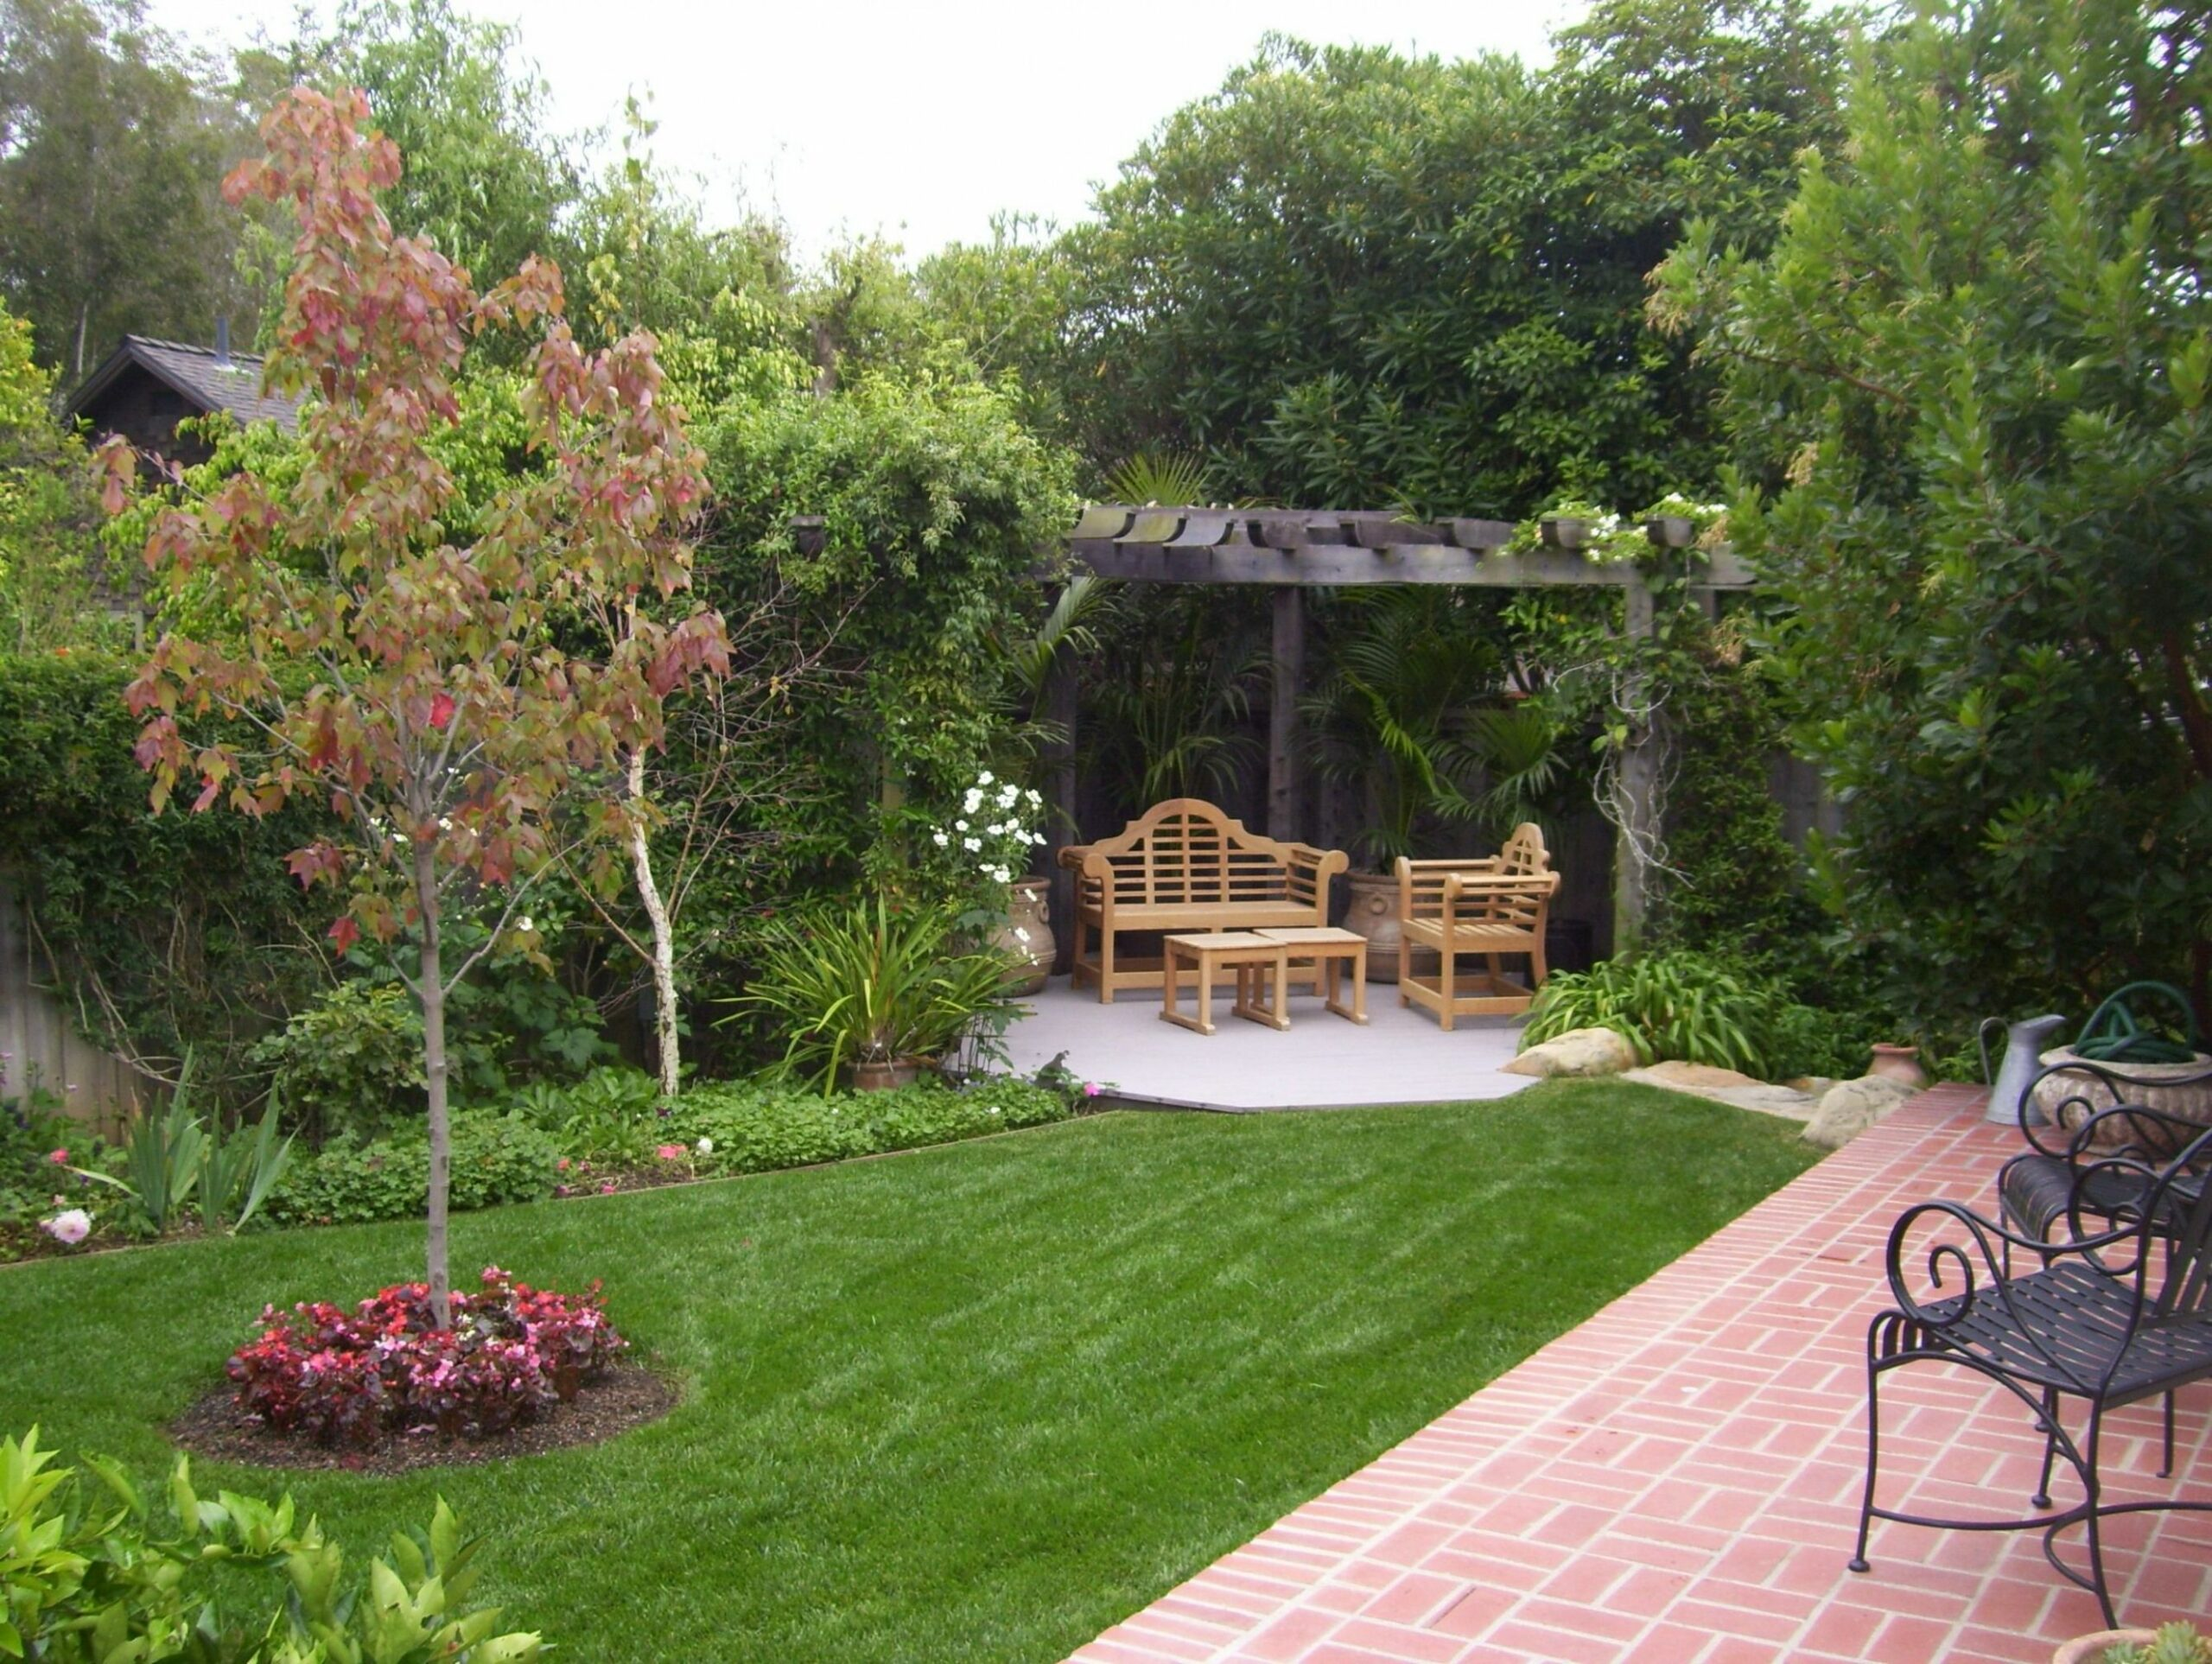 Landscaping Ideas For Large Backyards | MyCoffeepot